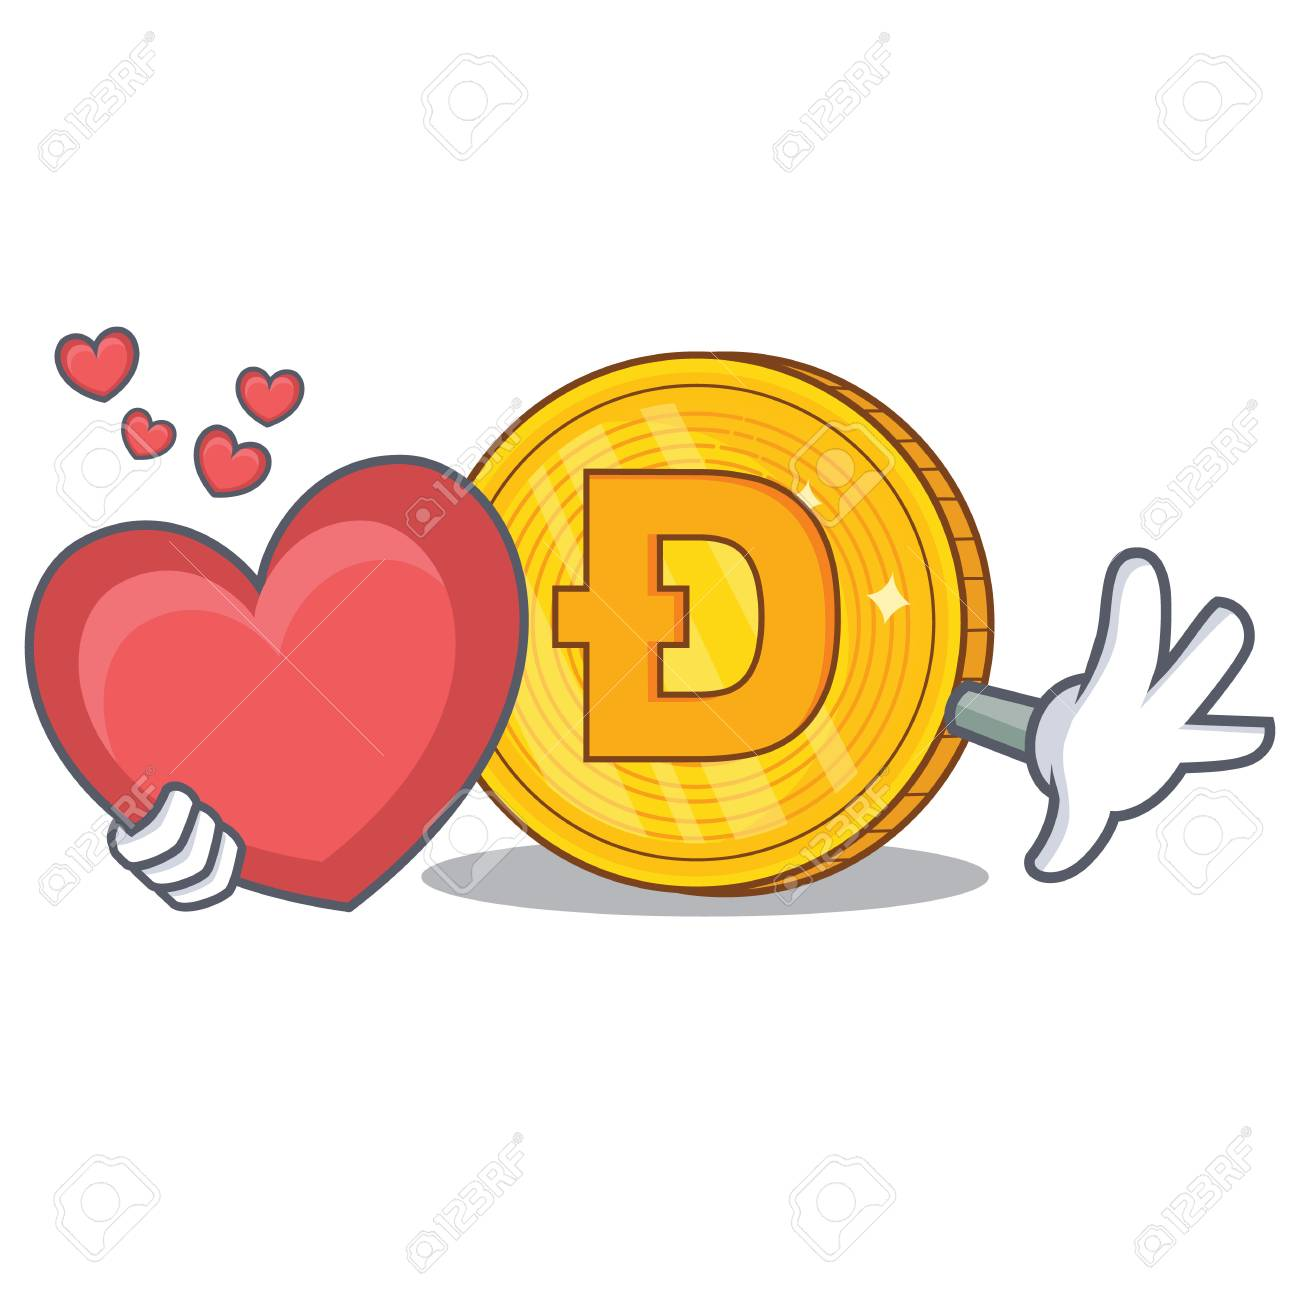 With Heart Dodgecoin Character Cartoon Style Royalty Free Cliparts